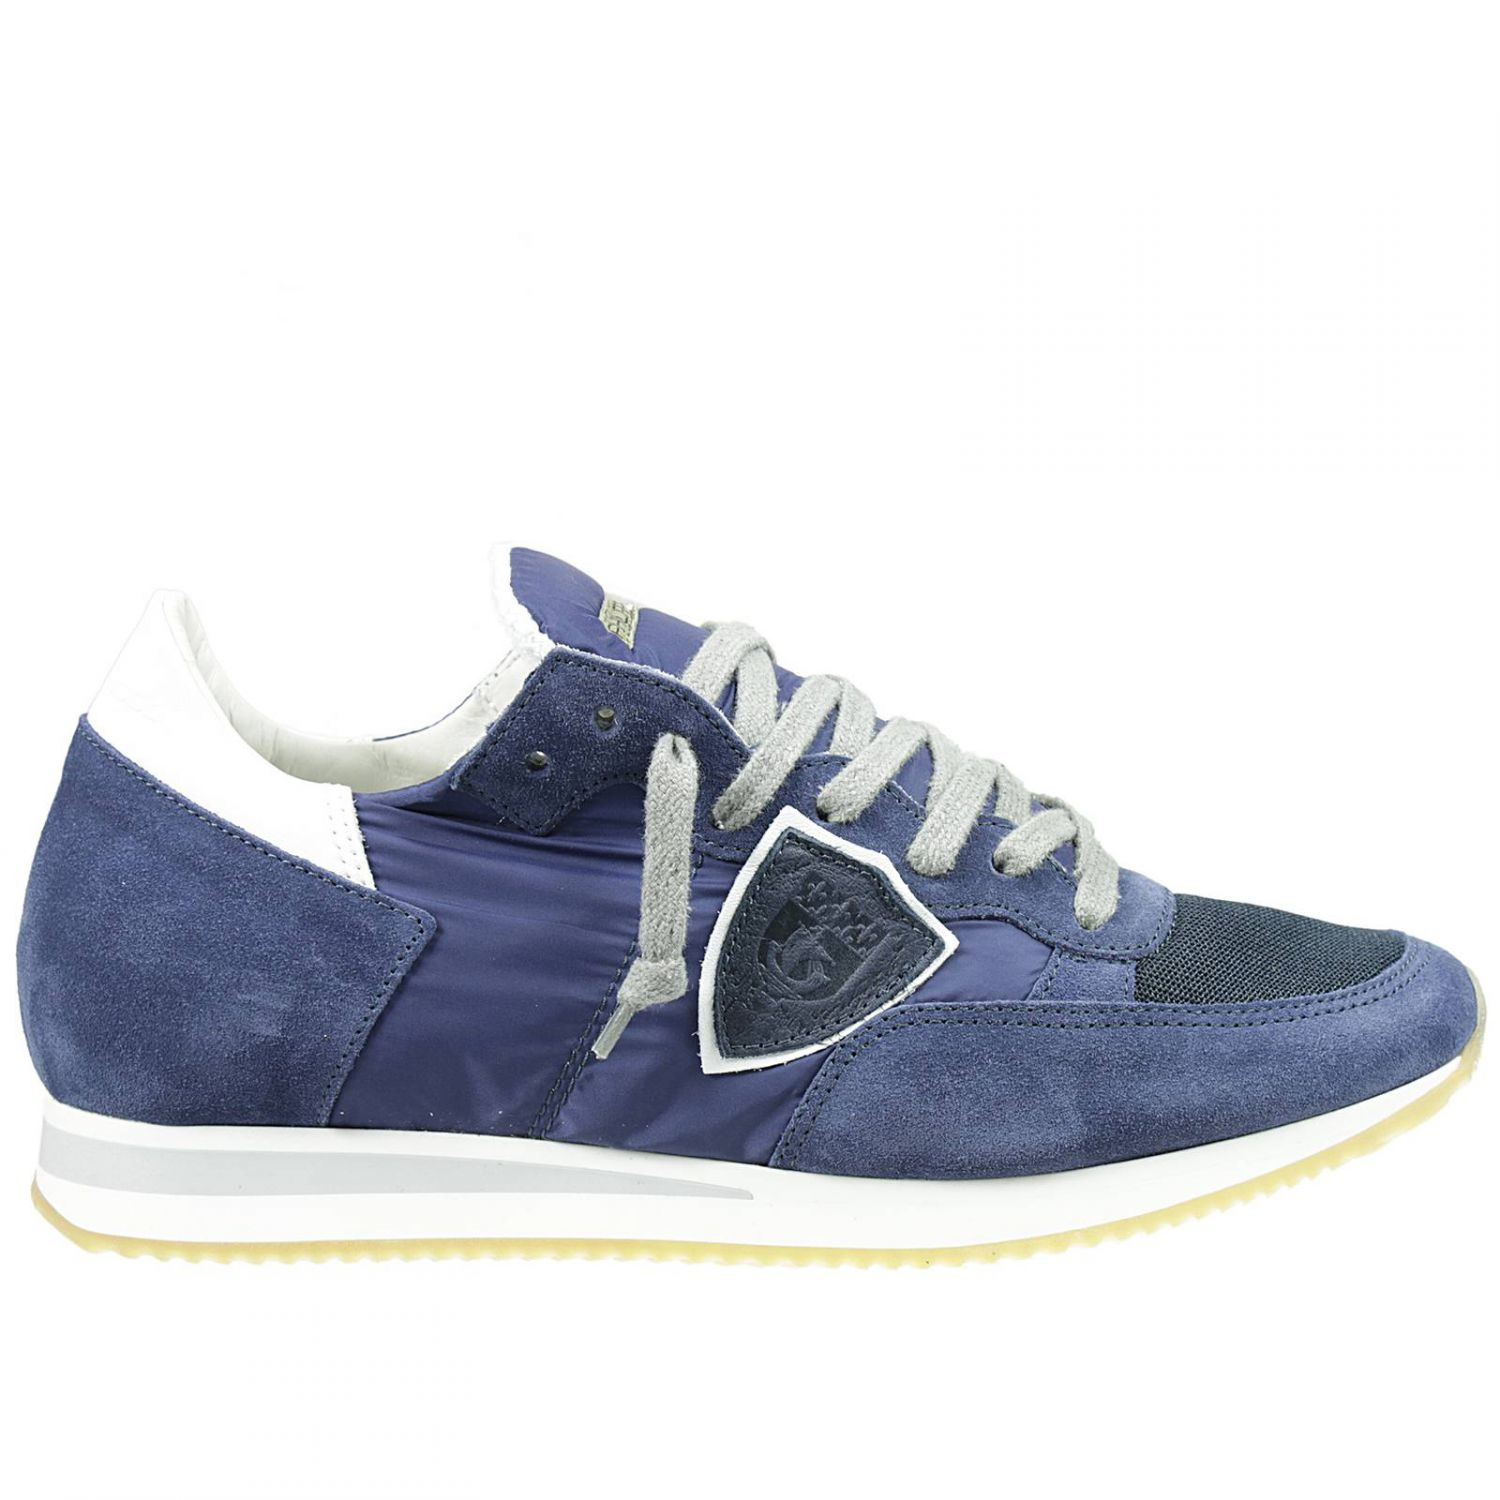 philippe model men 39 s sneakers in blue for men lyst. Black Bedroom Furniture Sets. Home Design Ideas